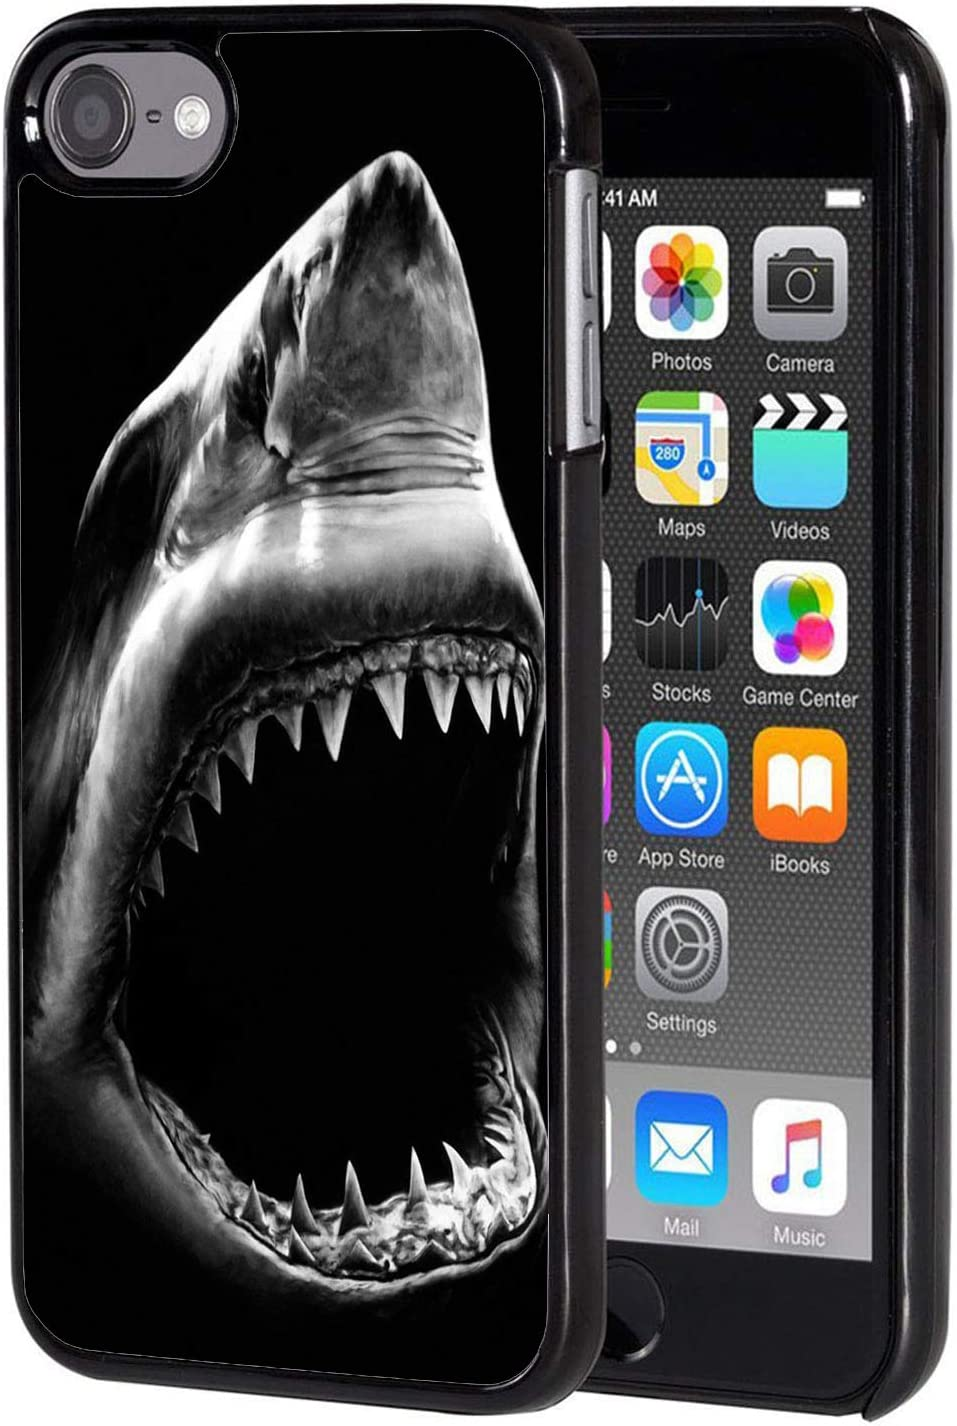 iPod Touch 6 Case,Shark Mouth Design Slim Anti-Scratch Shockproof Hard Plastic Back Protective Cover Case for iPod Touch 6 Generation 6th